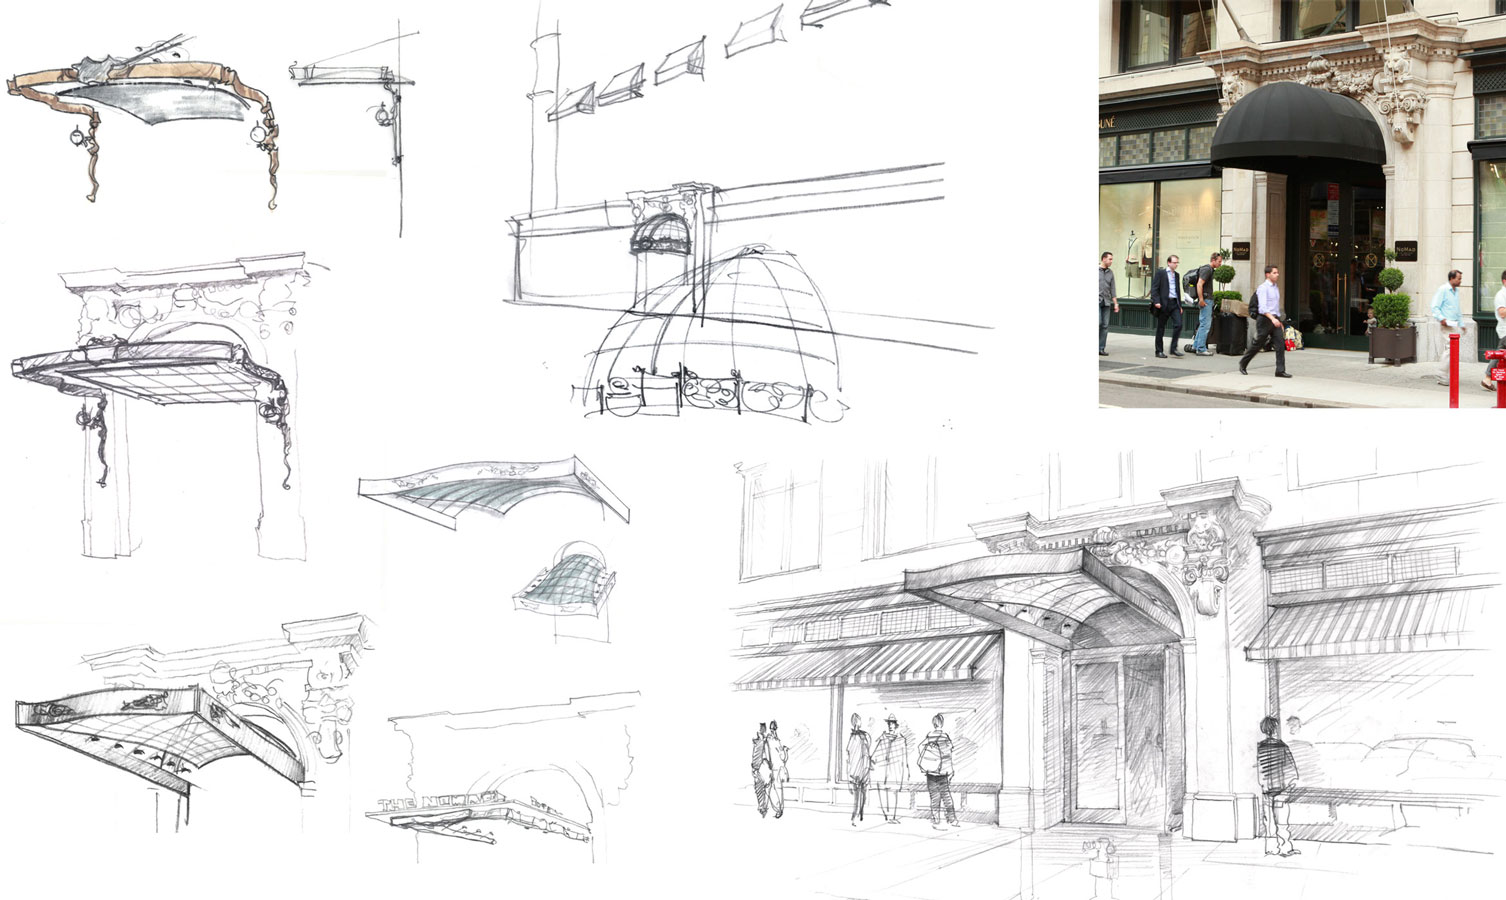 freehand rendering  architectural concept sketches hand drawing sketch pencil hotel and retail space by Shalumov